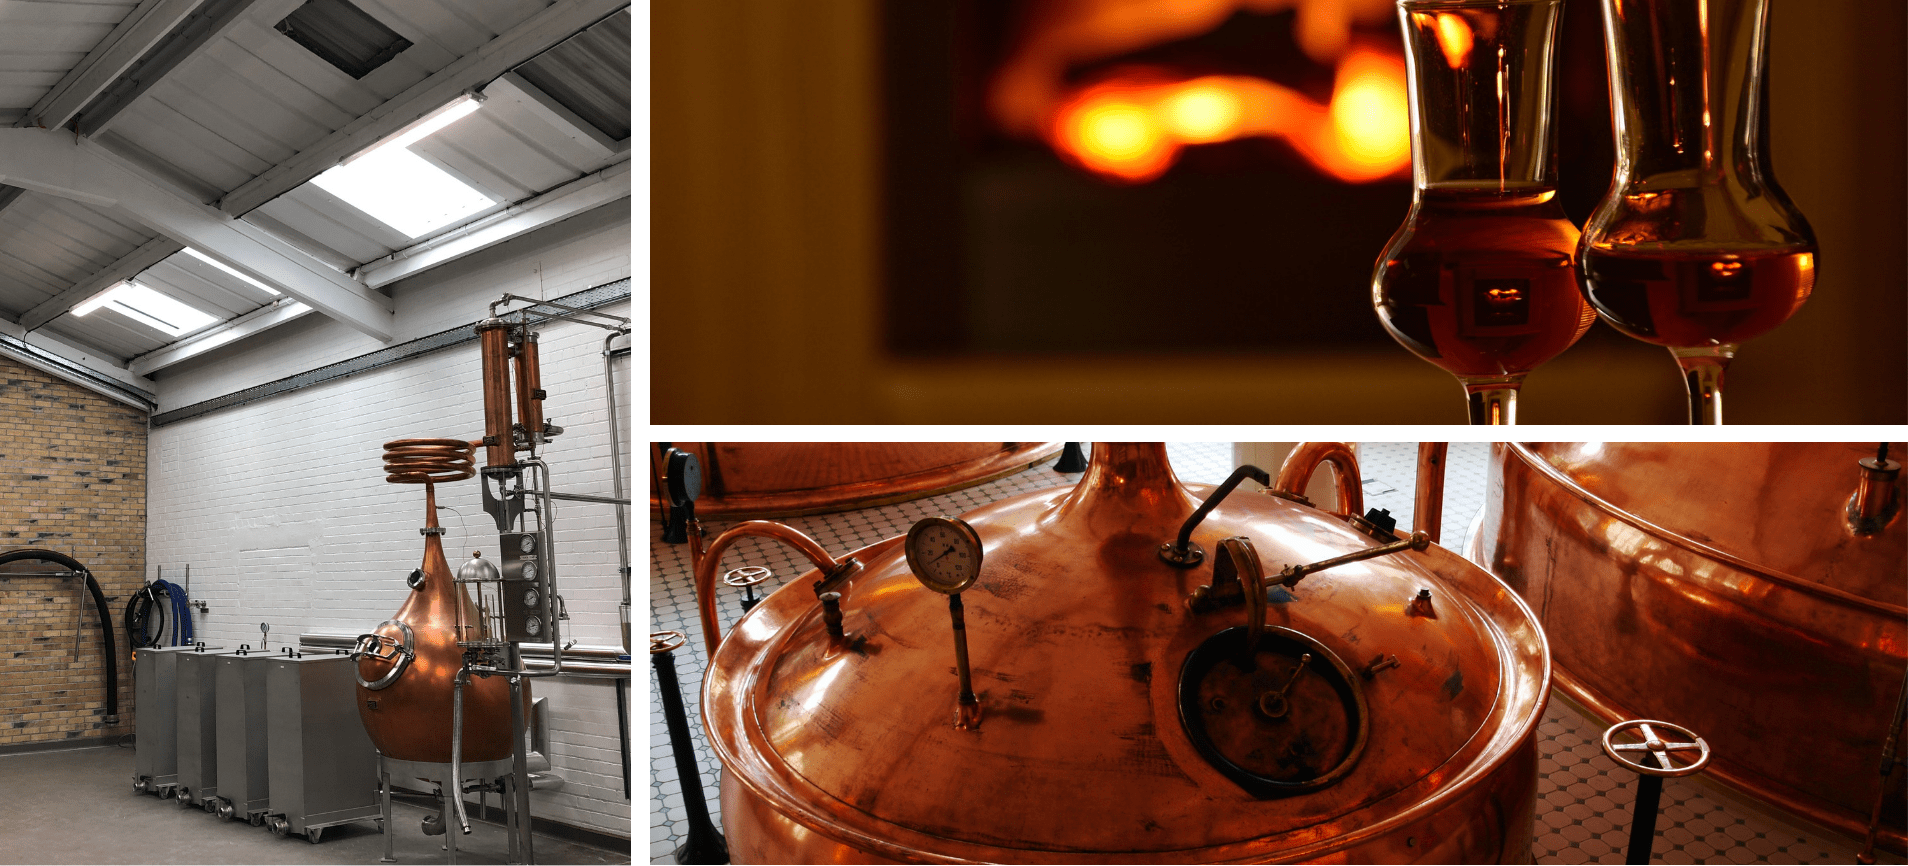 Three image collage with whisky and distillery images